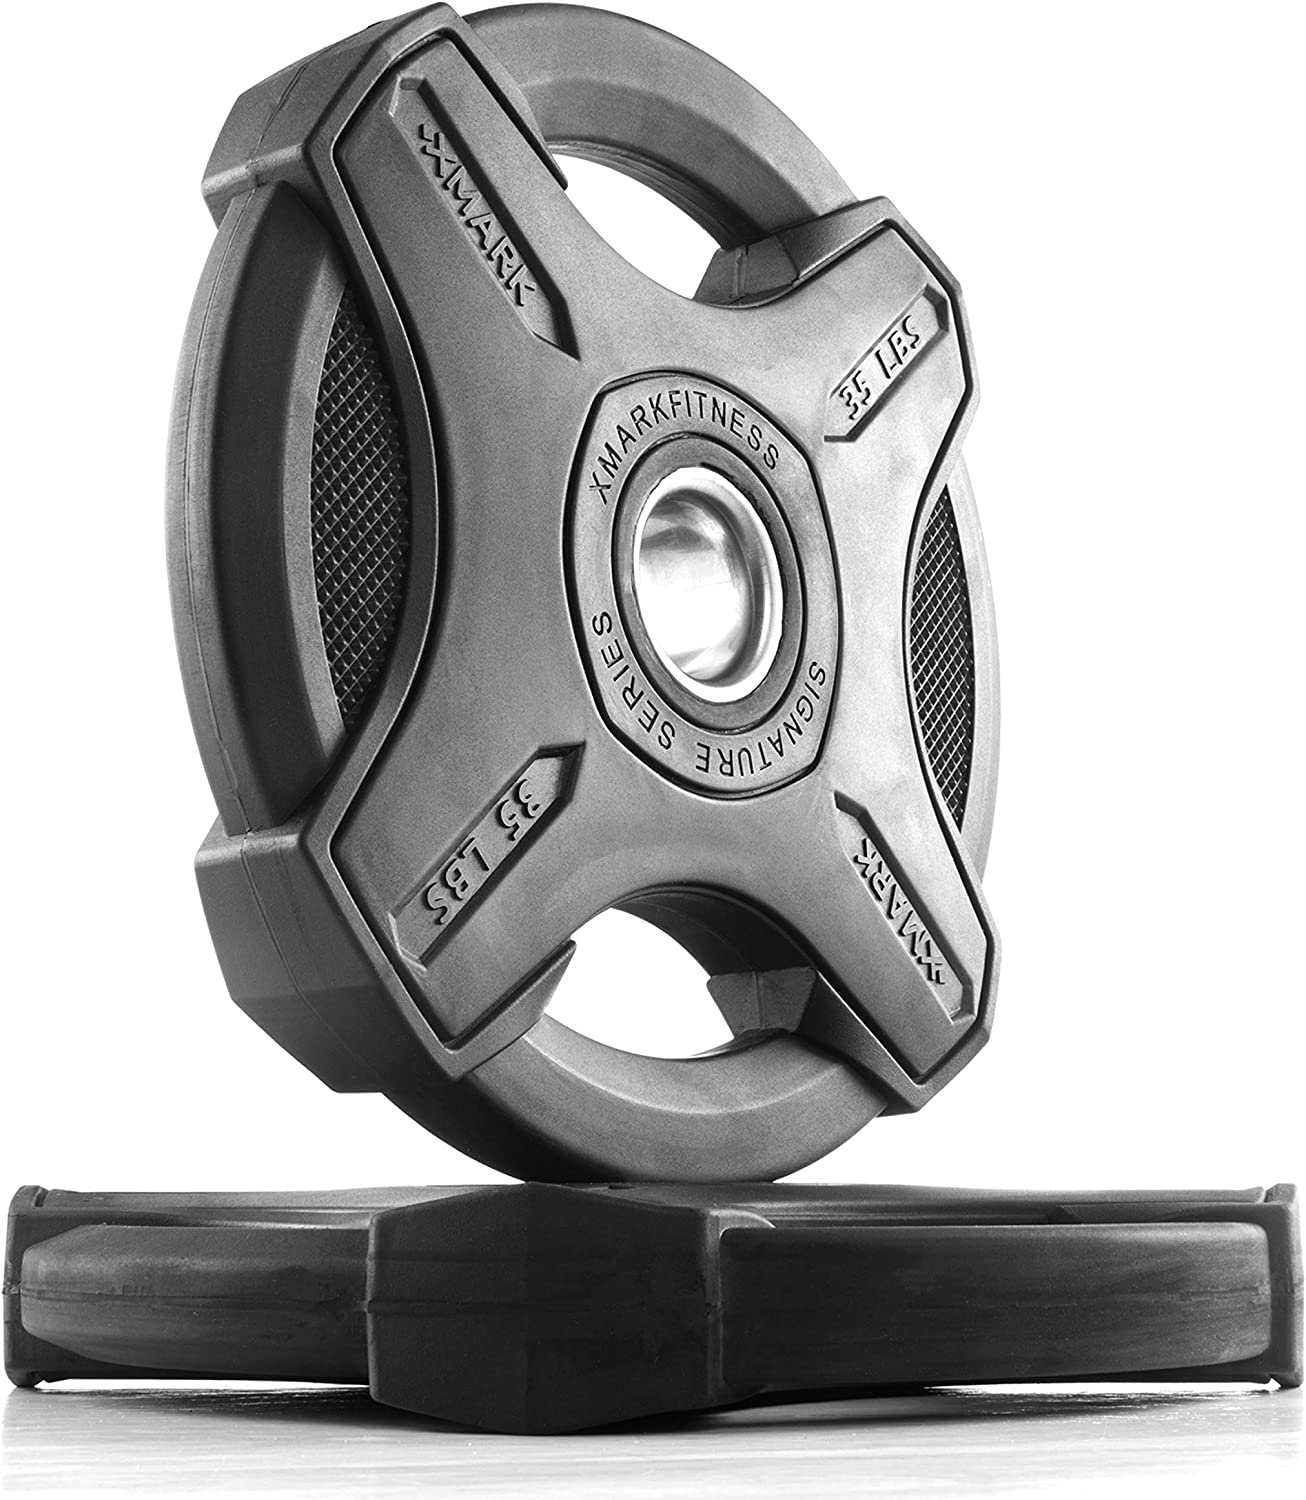 XMark Signature Plates, One-Year Warranty, Olympic Weight Plates, Cutting-Edge Design, Pairs and Sets, Use with 2 inch Olympic Bar